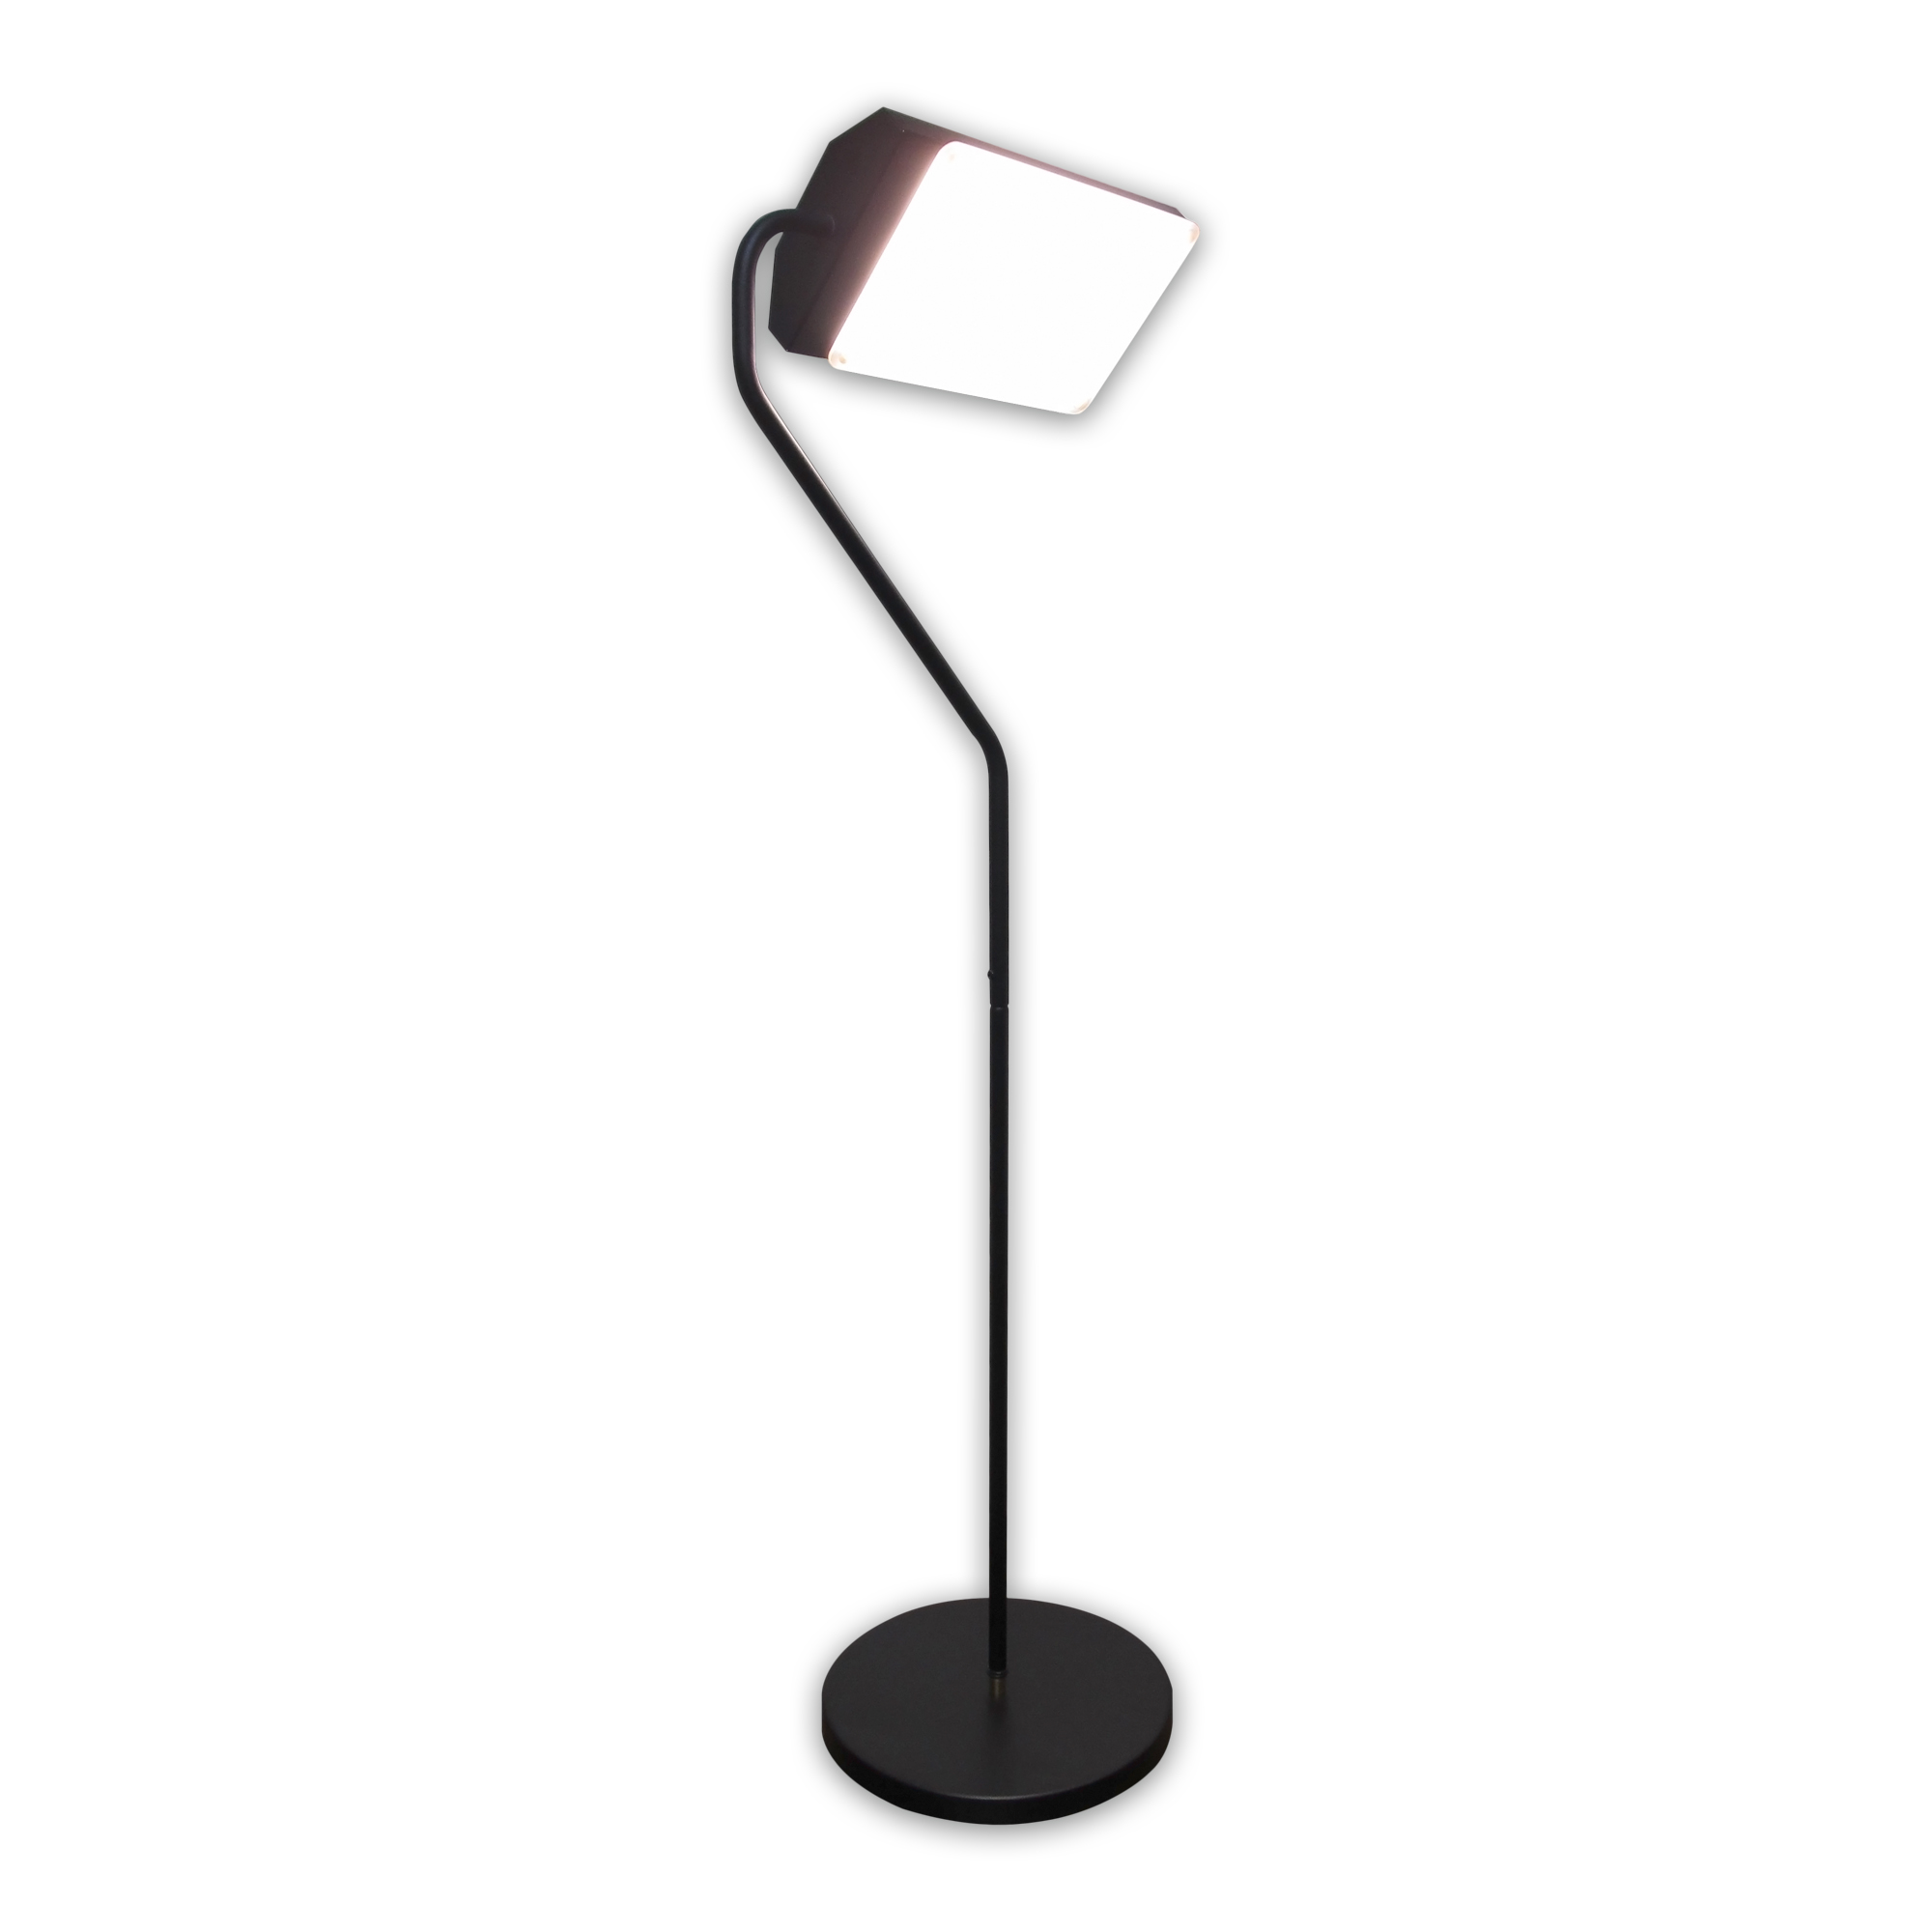 Flamingo 10,000 Lux, Bright Light Therapy Floor Lamp